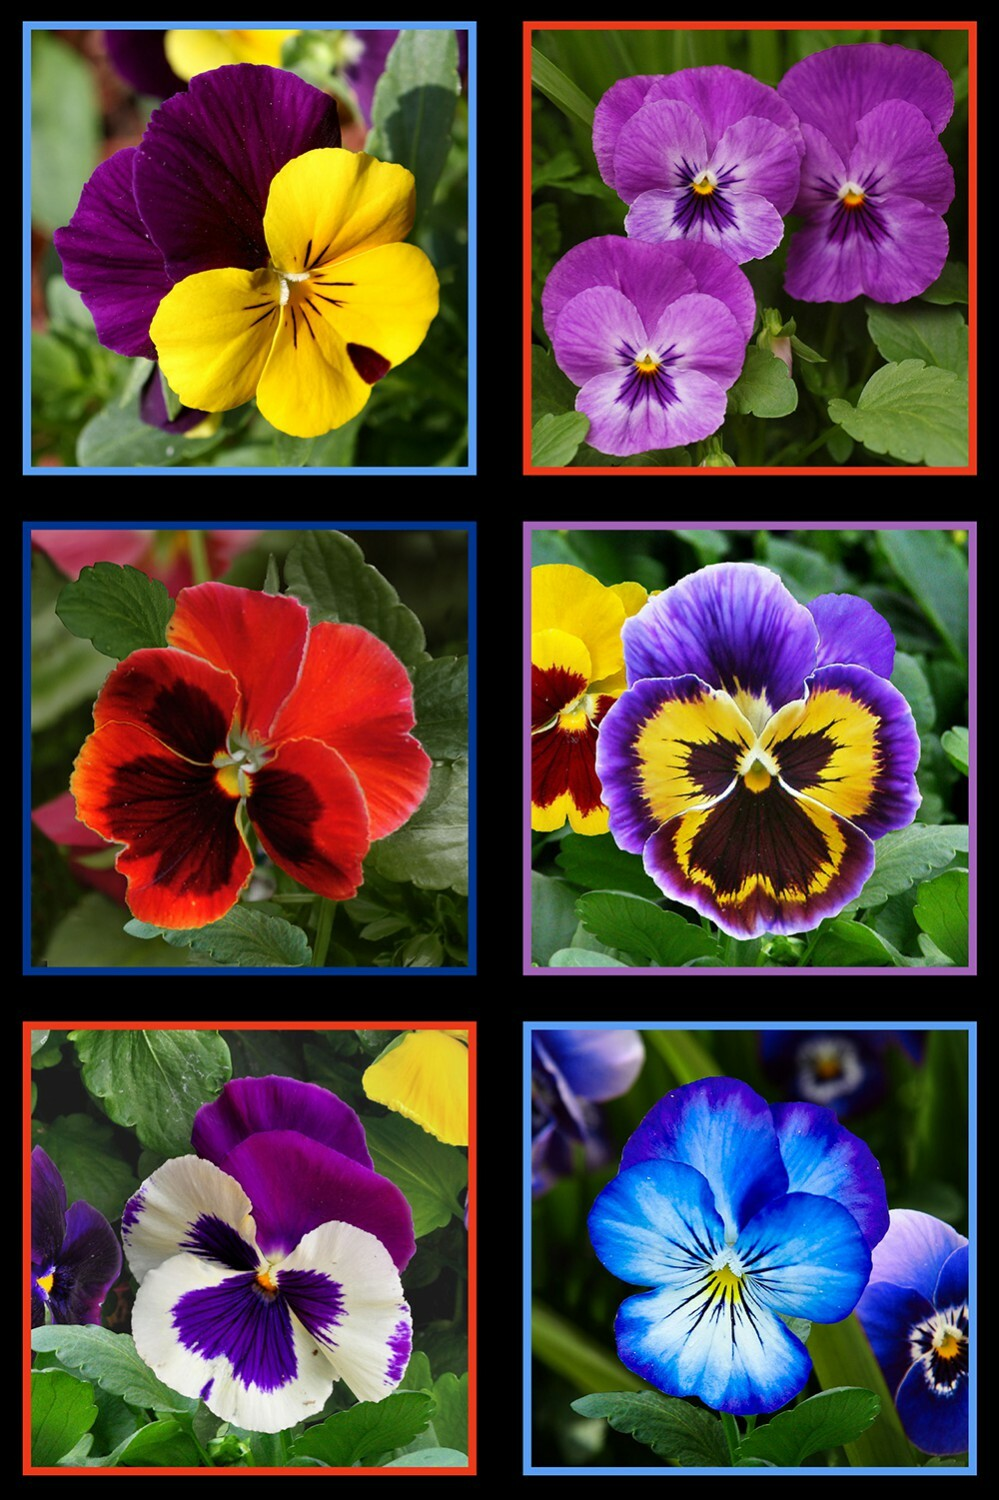 Lovely Pansies - Panel 56000